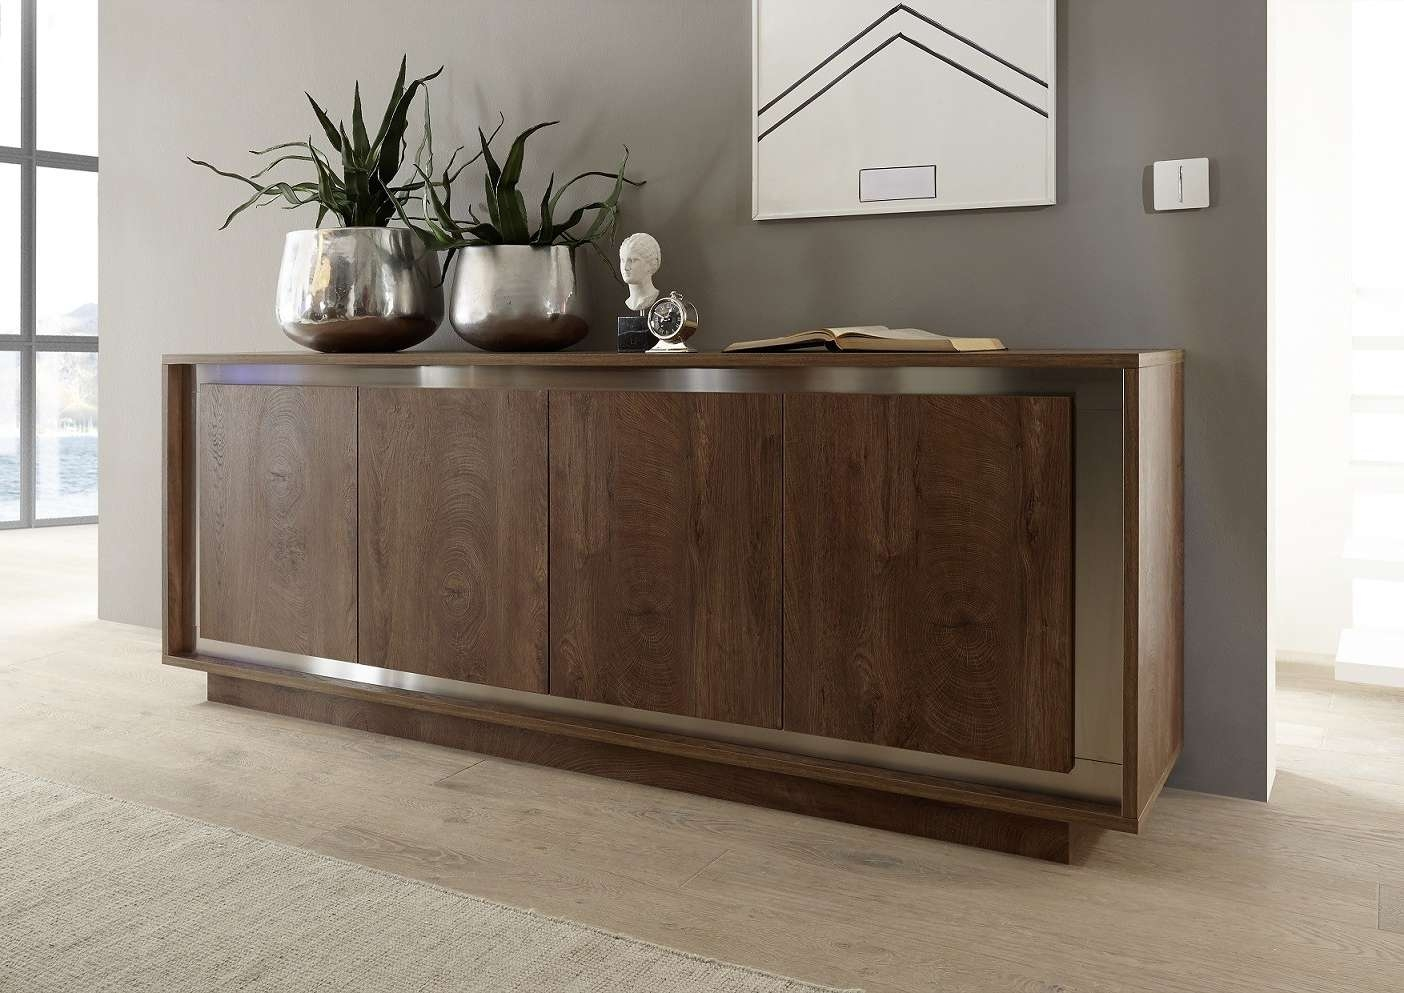 Modern Sideboards Uk – Sena Home Furniture With Regard To Lounge Sideboards (View 7 of 20)